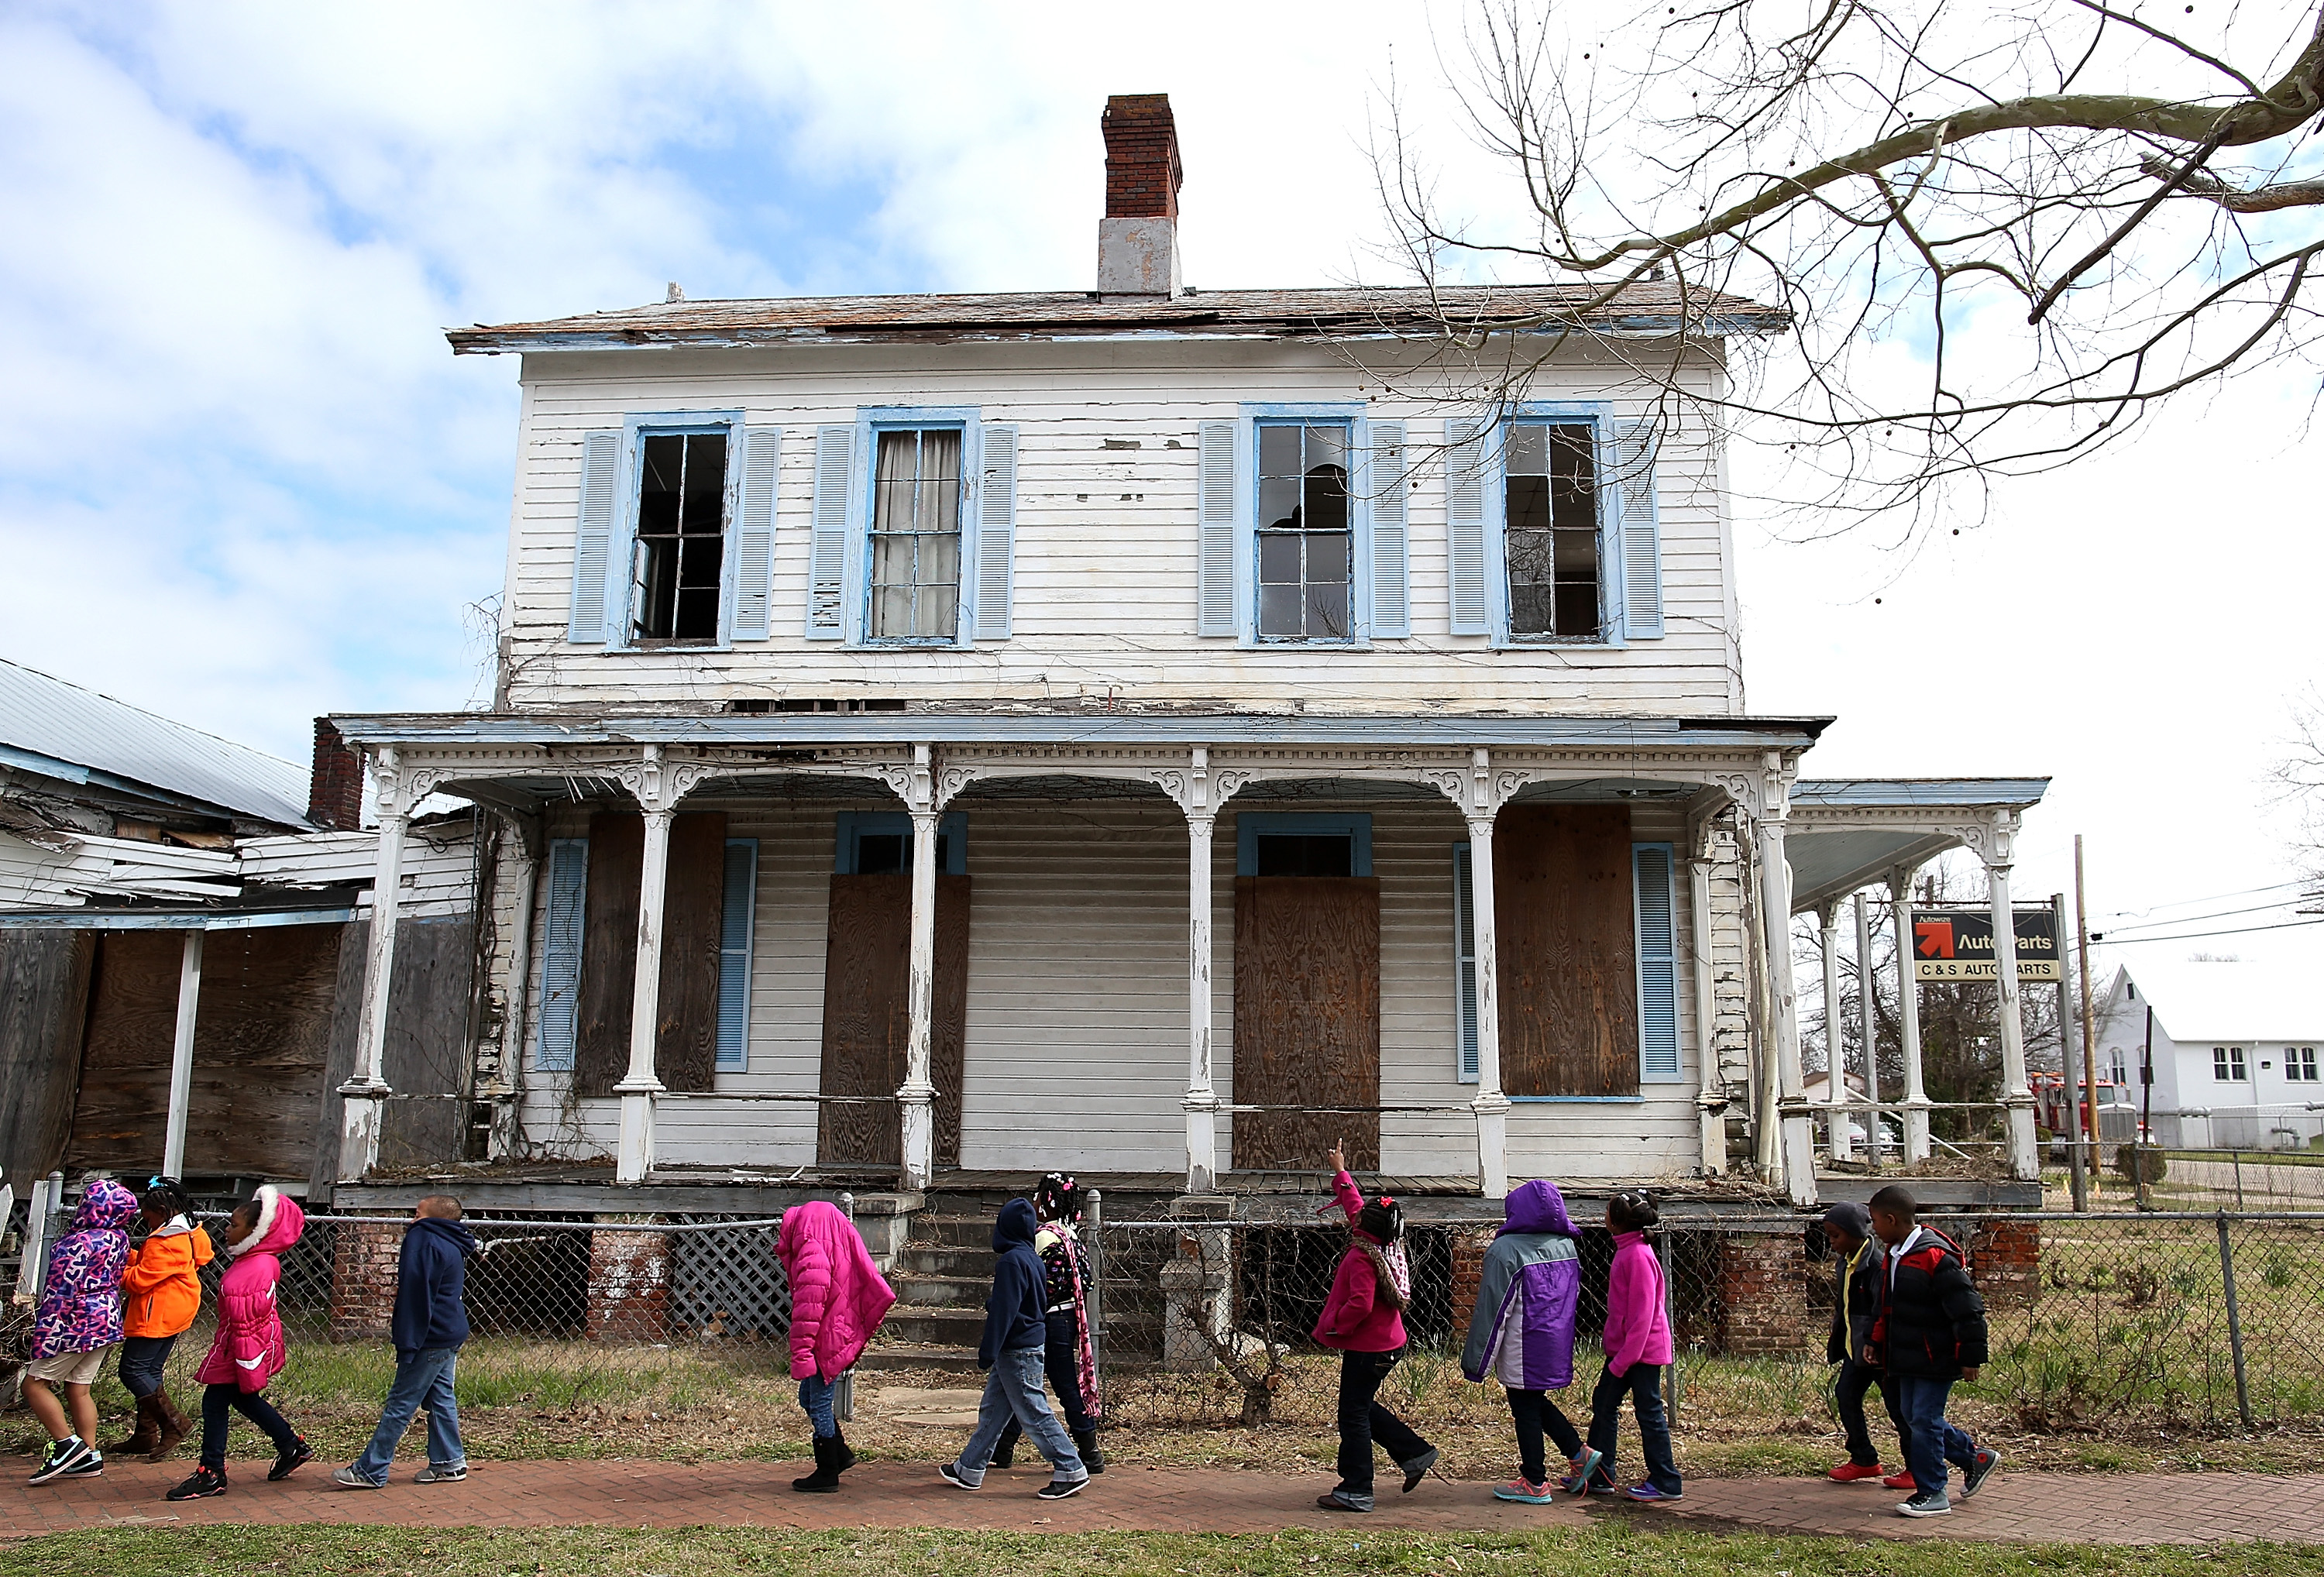 SELMA, AL - MARCH 06: School kids walk by a vacant home that is along the historic route that civil rights marchers took during the Selma to Montgomery march on March 6, 2015 in Selma, Alabama. 50 years after the historic civil rights march from Selma to Montgomery where marchers were beaten by State police officers as they crossed the Edmund Pettus Bridge, Selma struggles economically and is one of the poorest cities in Alabama with a 10.2 percent unemployment rate and over 40 percent of residents living below the national poverty level. (Photo by Justin Sullivan/Getty Images)